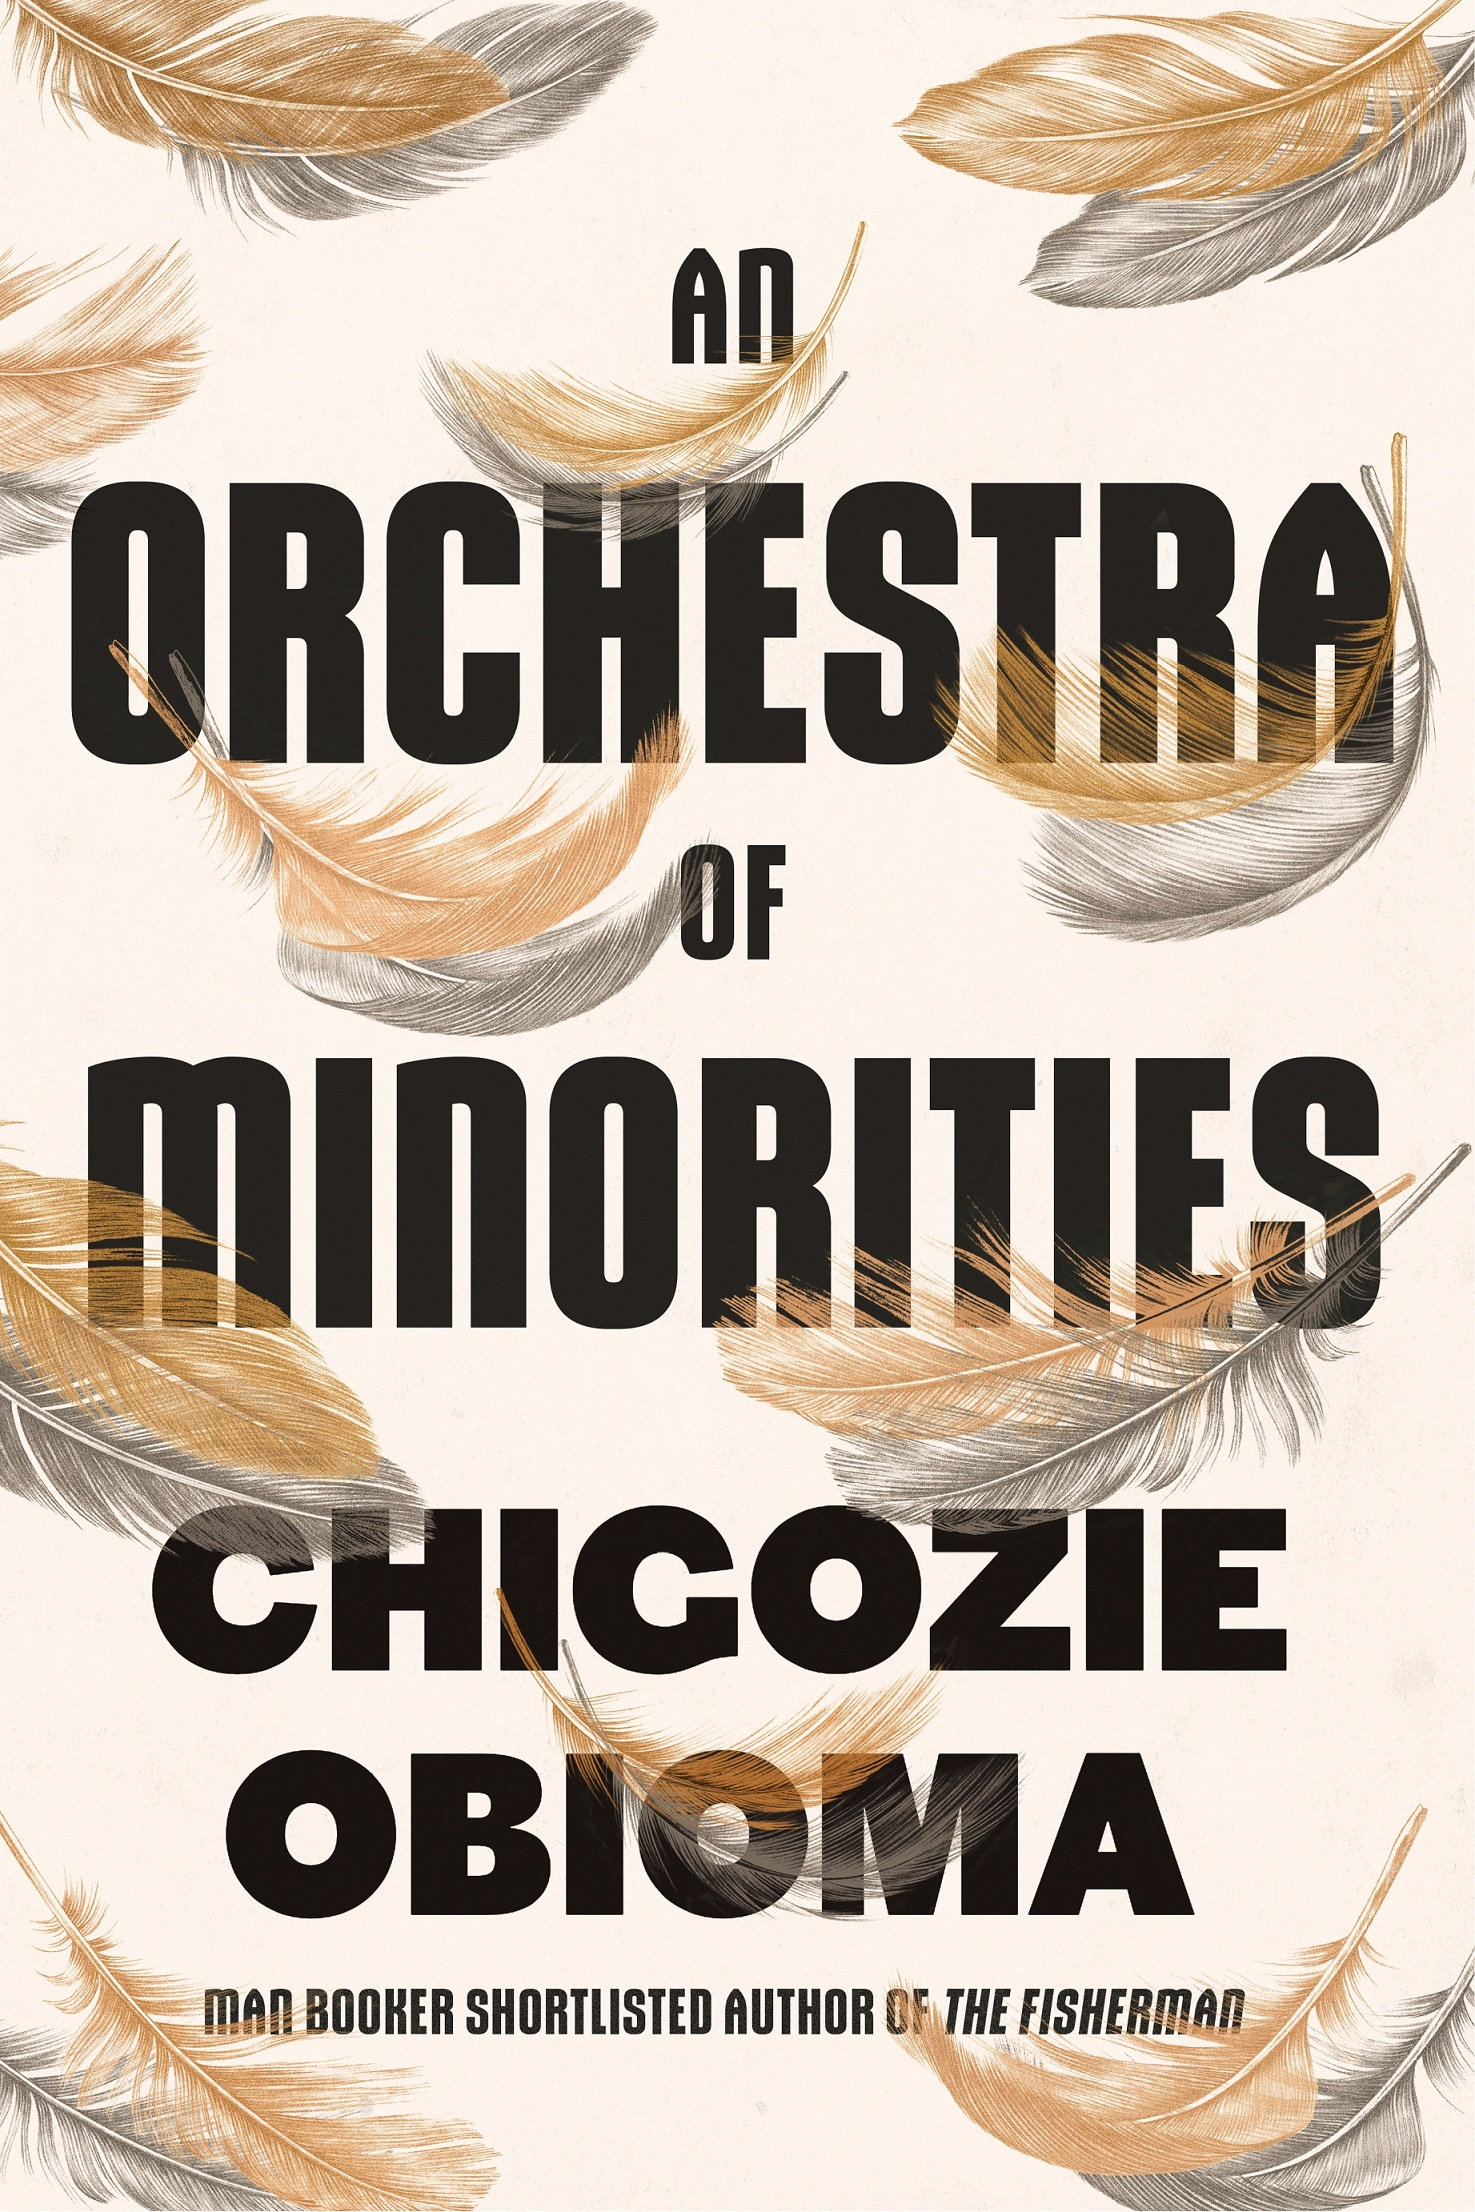 Chigozie obioma an orchestra of minorities